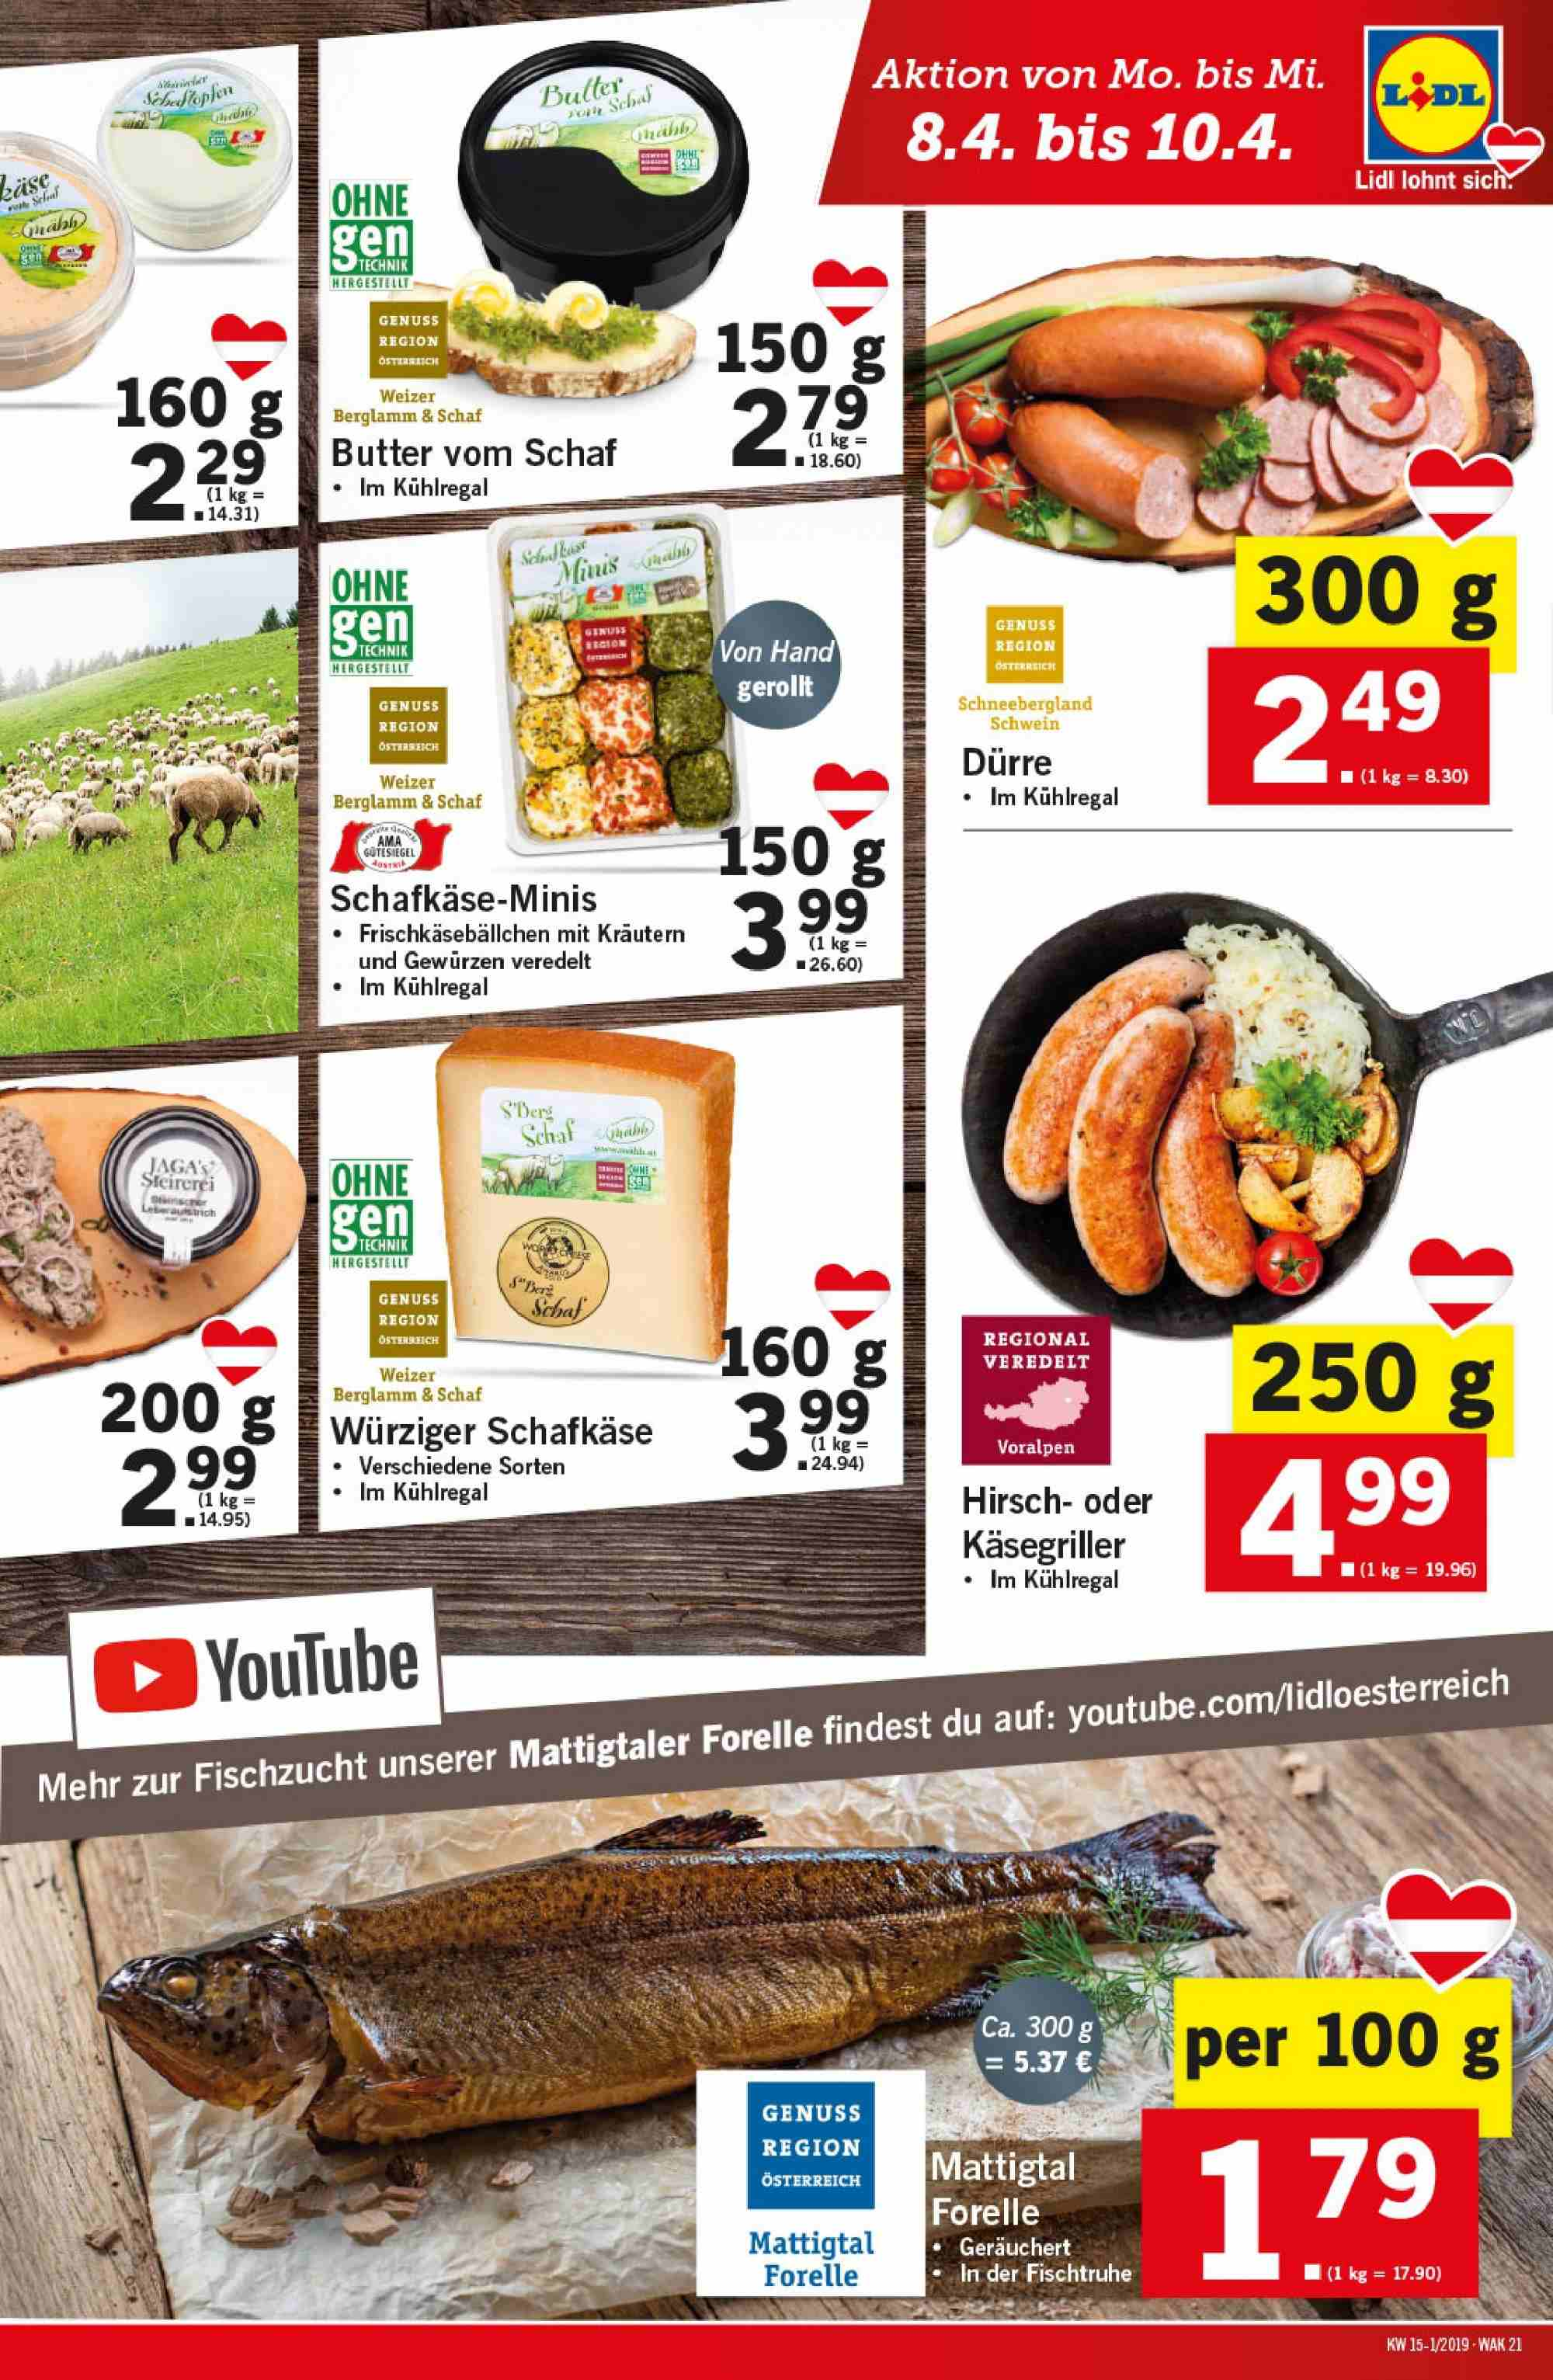 Angebote Lidl - 4.4.2019 - 10.4.2019. Seite 21.